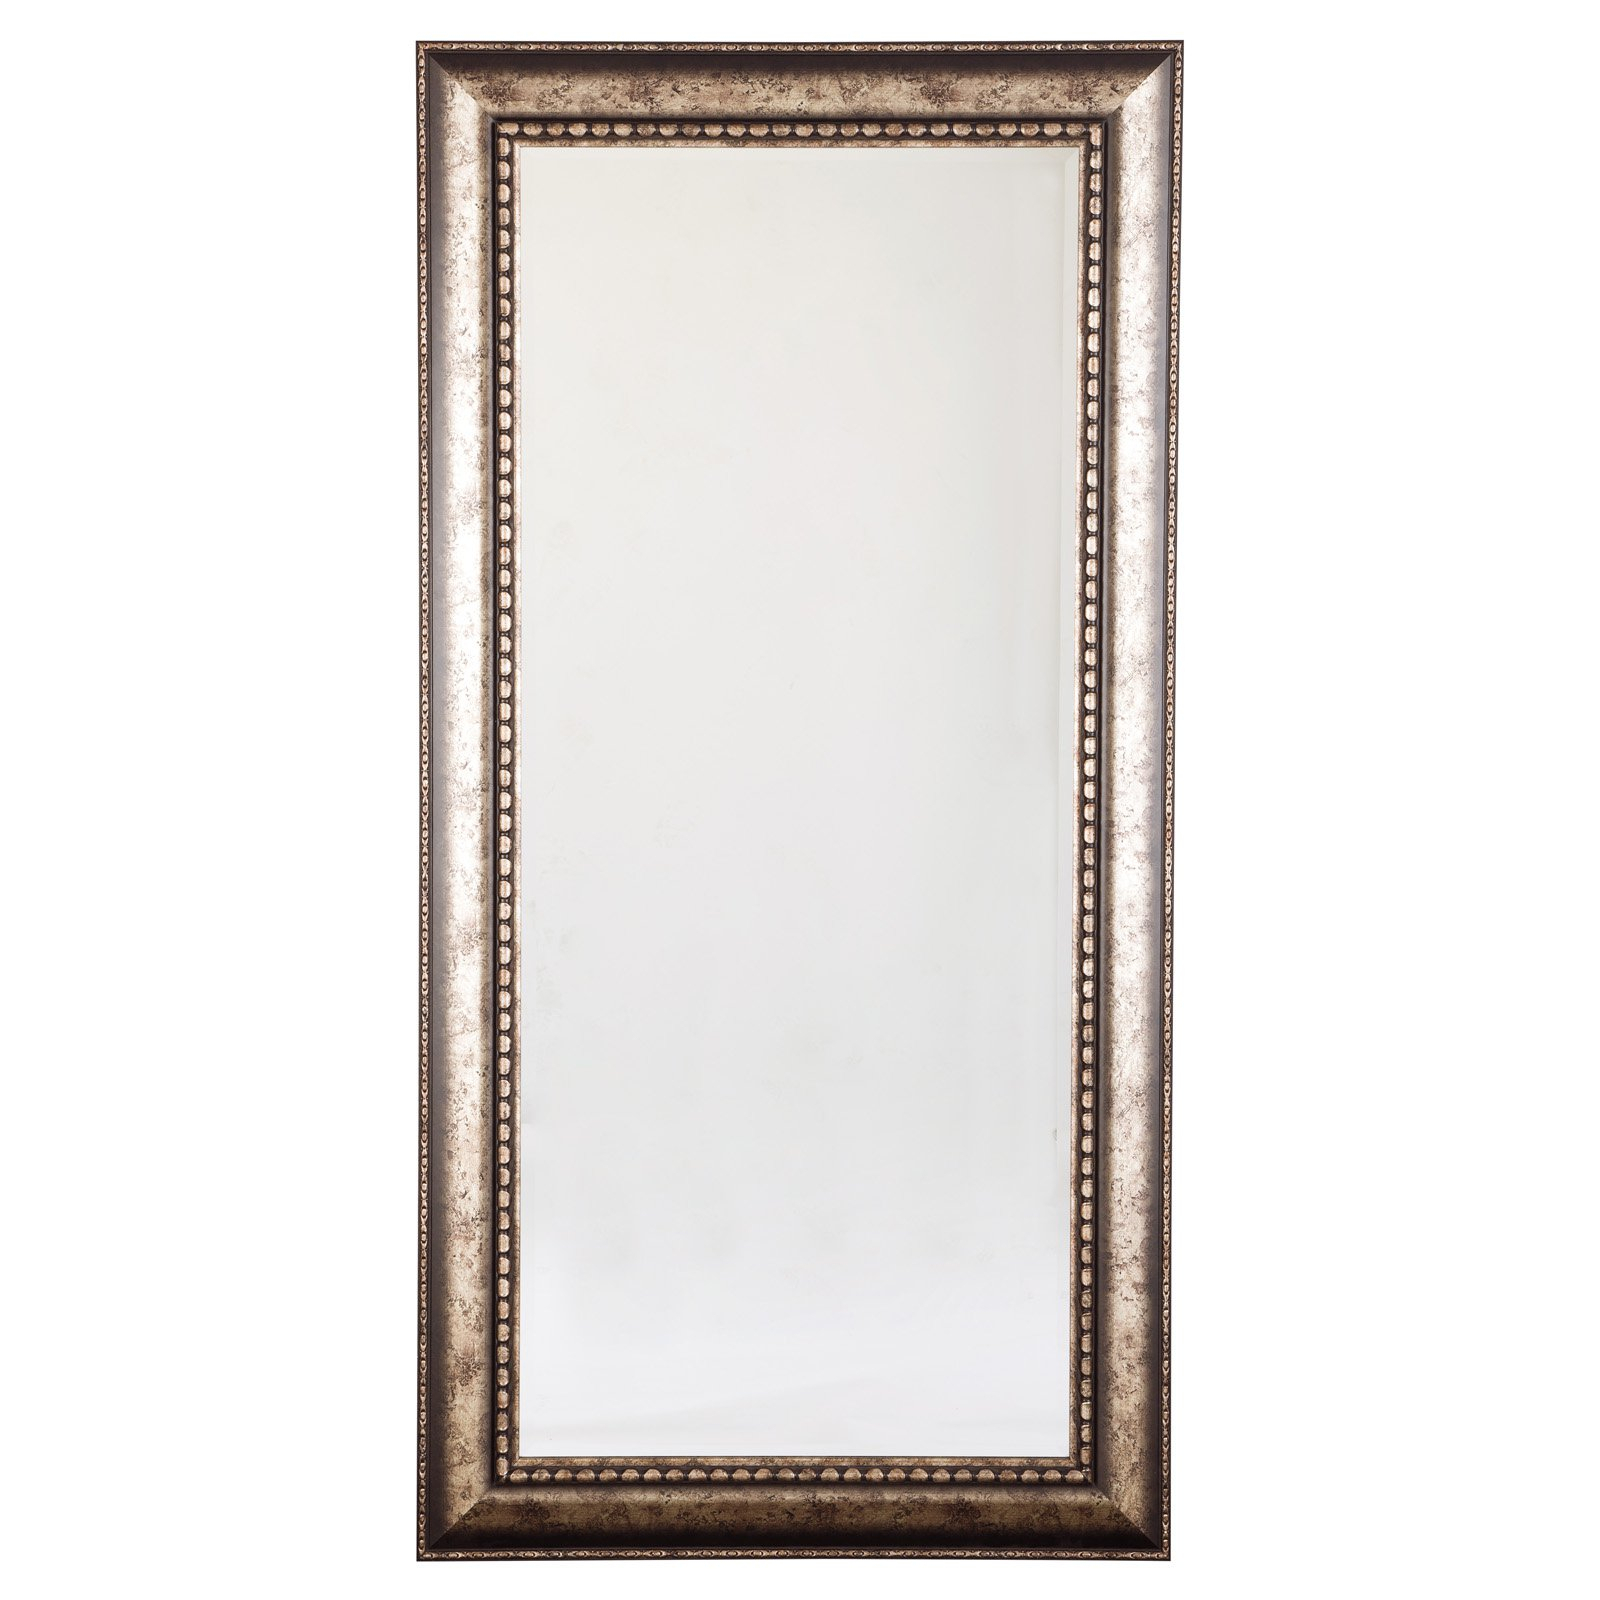 Signature Designashley Dulal Accent Floor Mirror - 36W X 72H In. inside Silver Frame Accent Mirrors (Image 25 of 30)